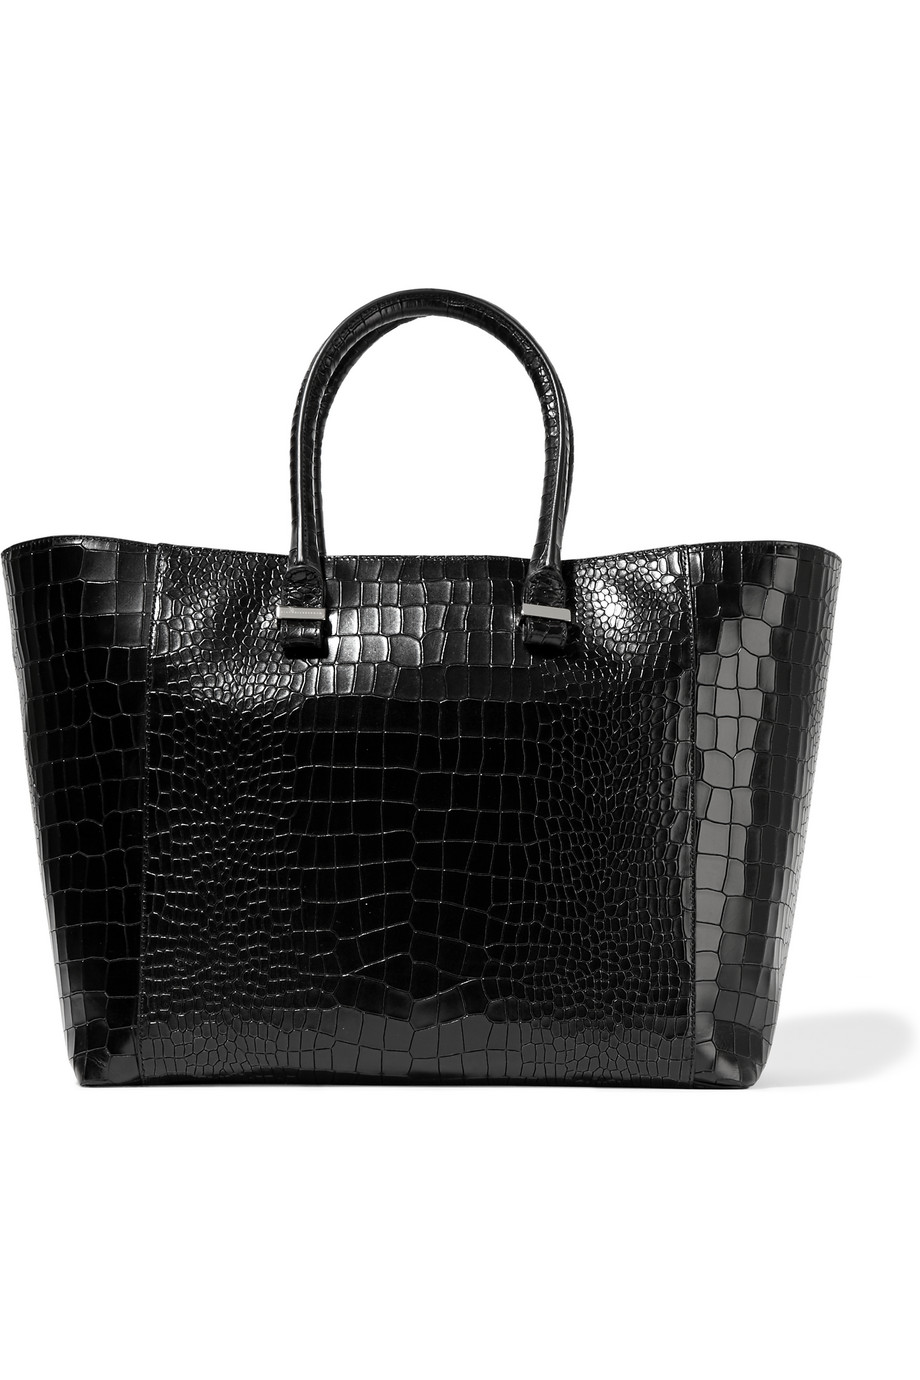 Victoria Beckham Liberty Croc-Effect Leather Tote, Black, Women's